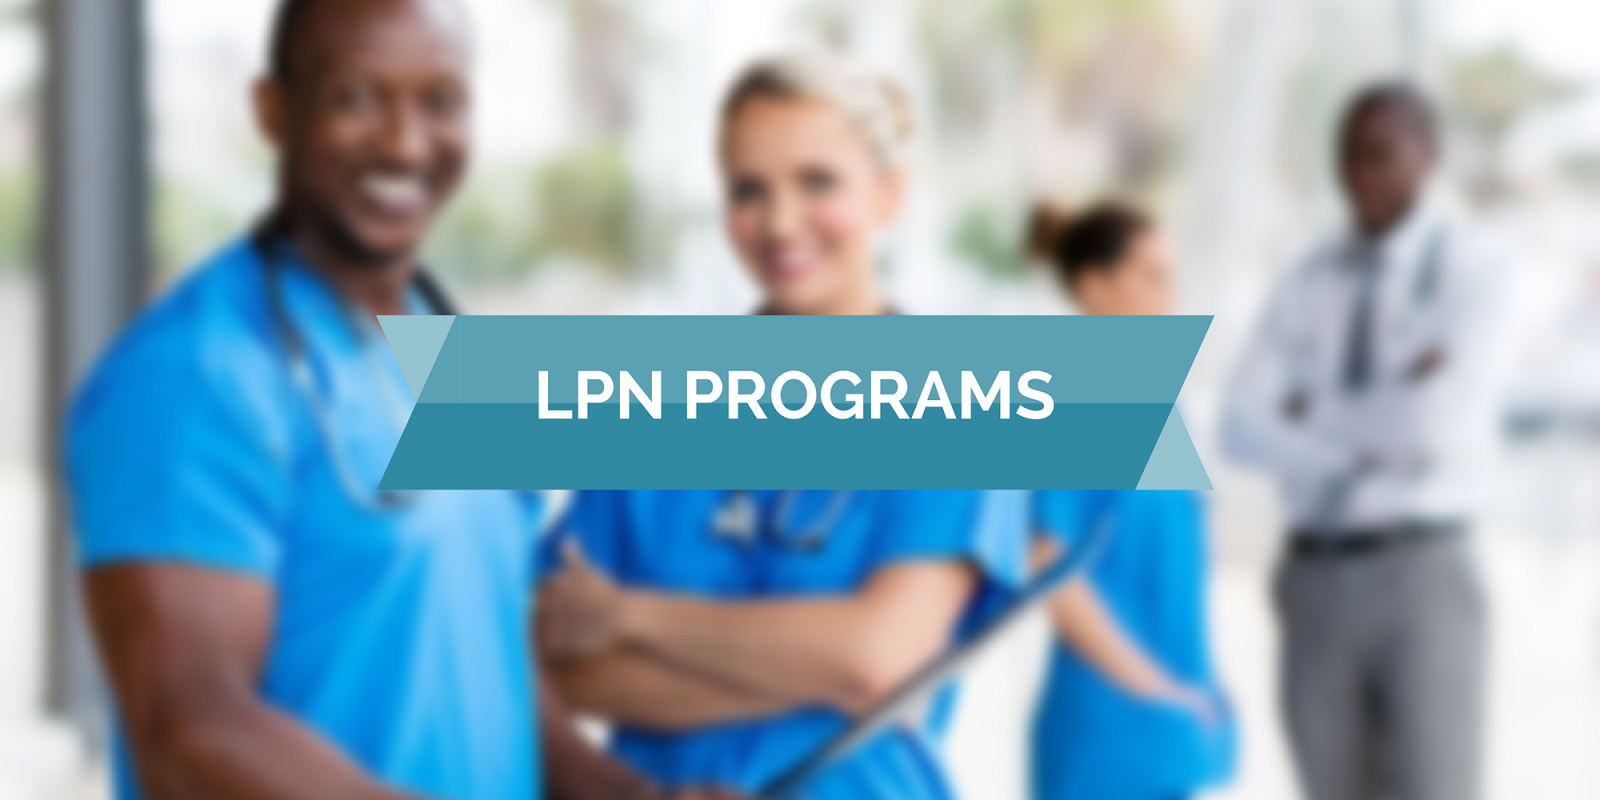 Best Online Colleges For Lpn Programs. What Is The Best Life Insurance Company. Mortgage Companies In Baton Rouge. Capitol Conference Center Sell On My Website. Altera Fpga Development Boards. Lawyers That Sue Lawyers Reverse Mortgage Info. First Time Home Buyer Programs Az. Crowd Funding Small Business Ch 13 Trustee. Cedar Shake Roofing Cost Hyundai Dealers Ohio